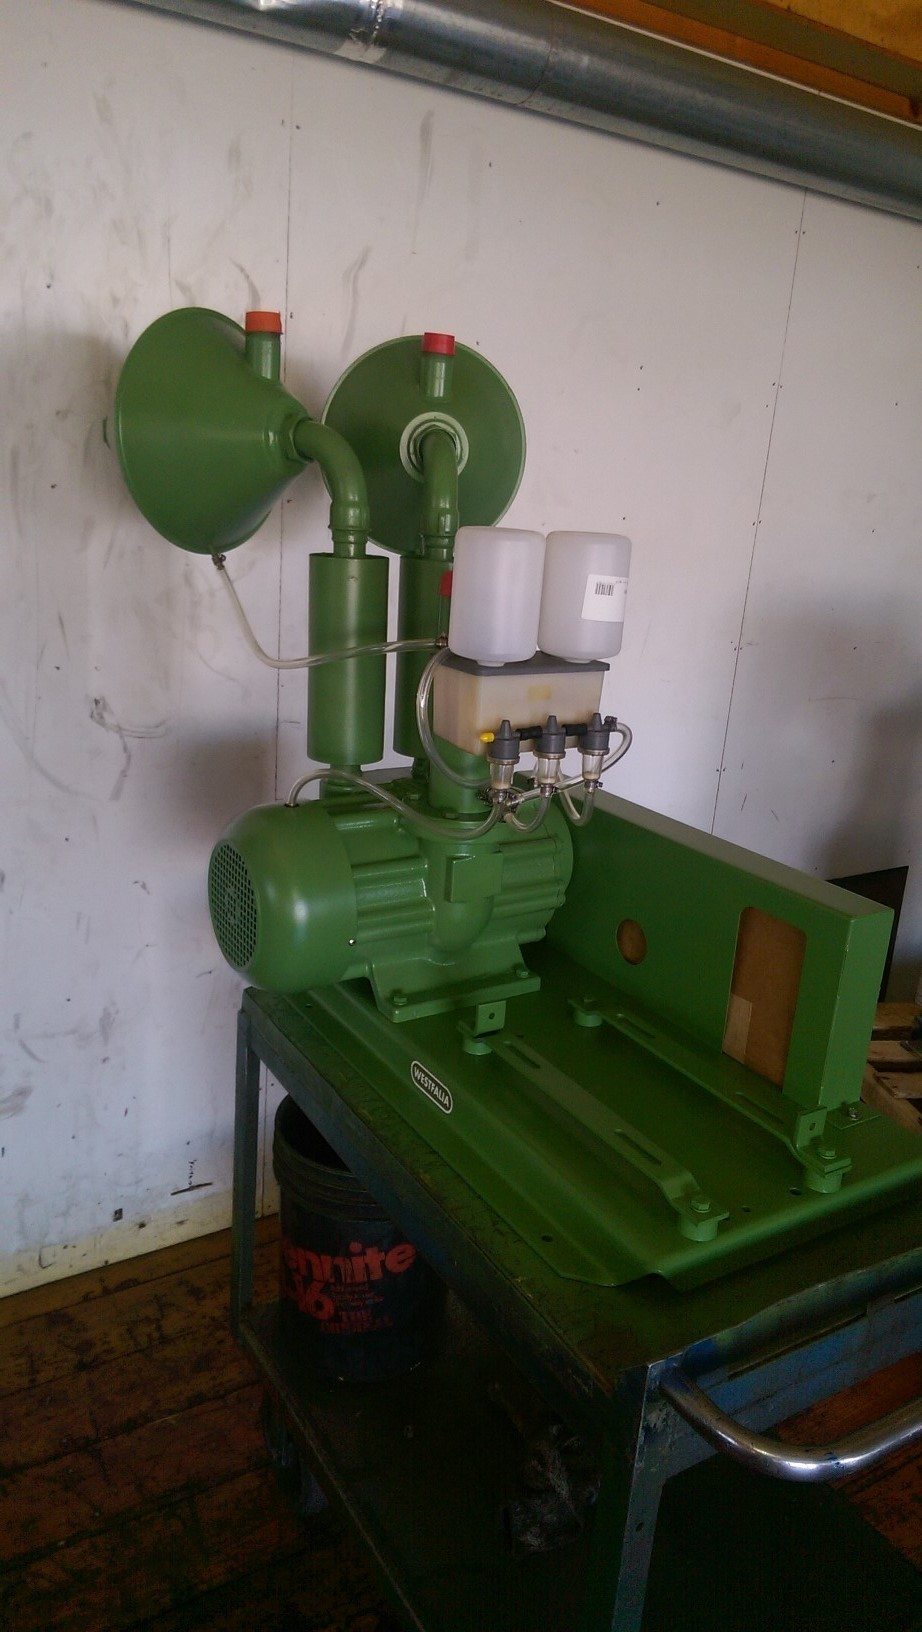 Used rebuilt RPS 2800 pump unit, new style